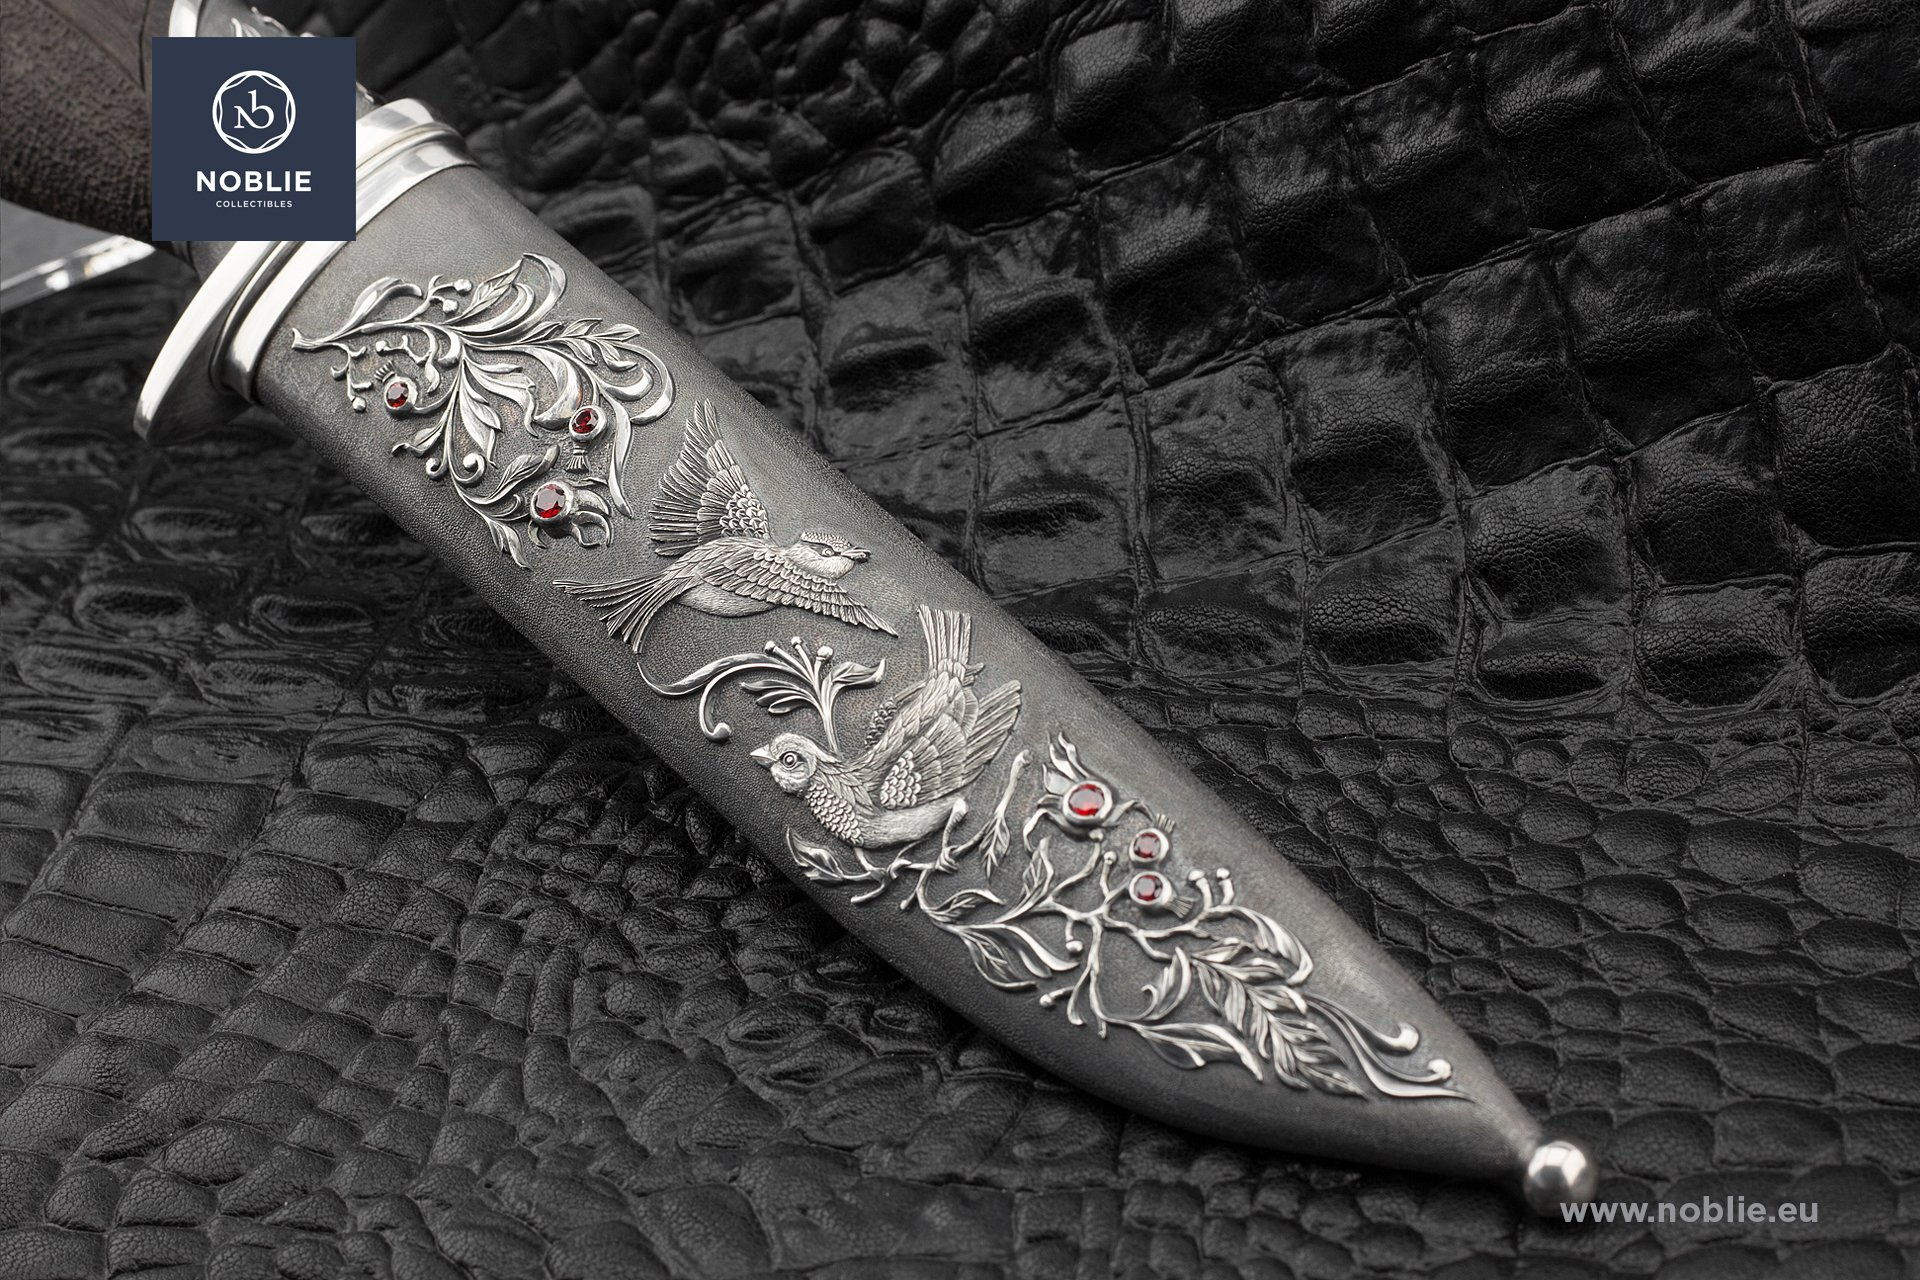 new custom knife for true knife collector